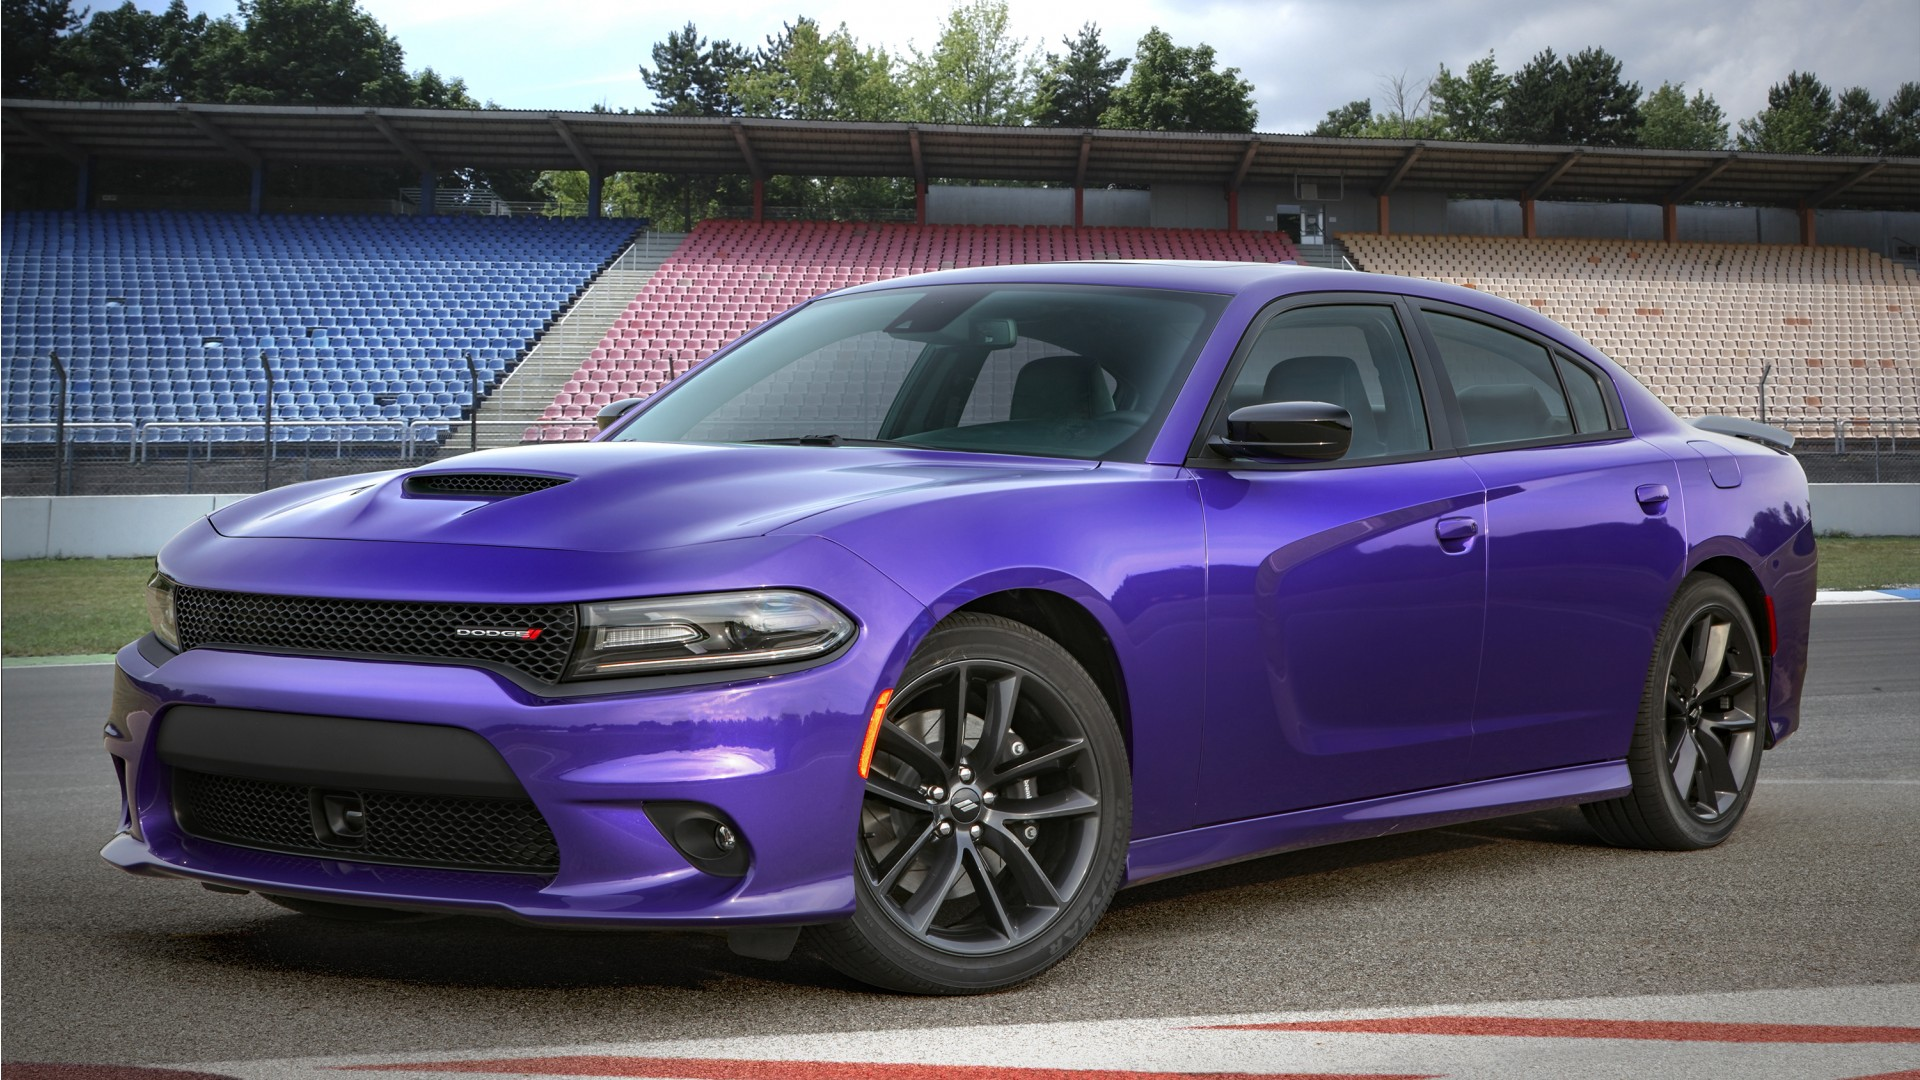 2019 Dodge Charger GT Wallpaper | HD Car Wallpapers | ID ...